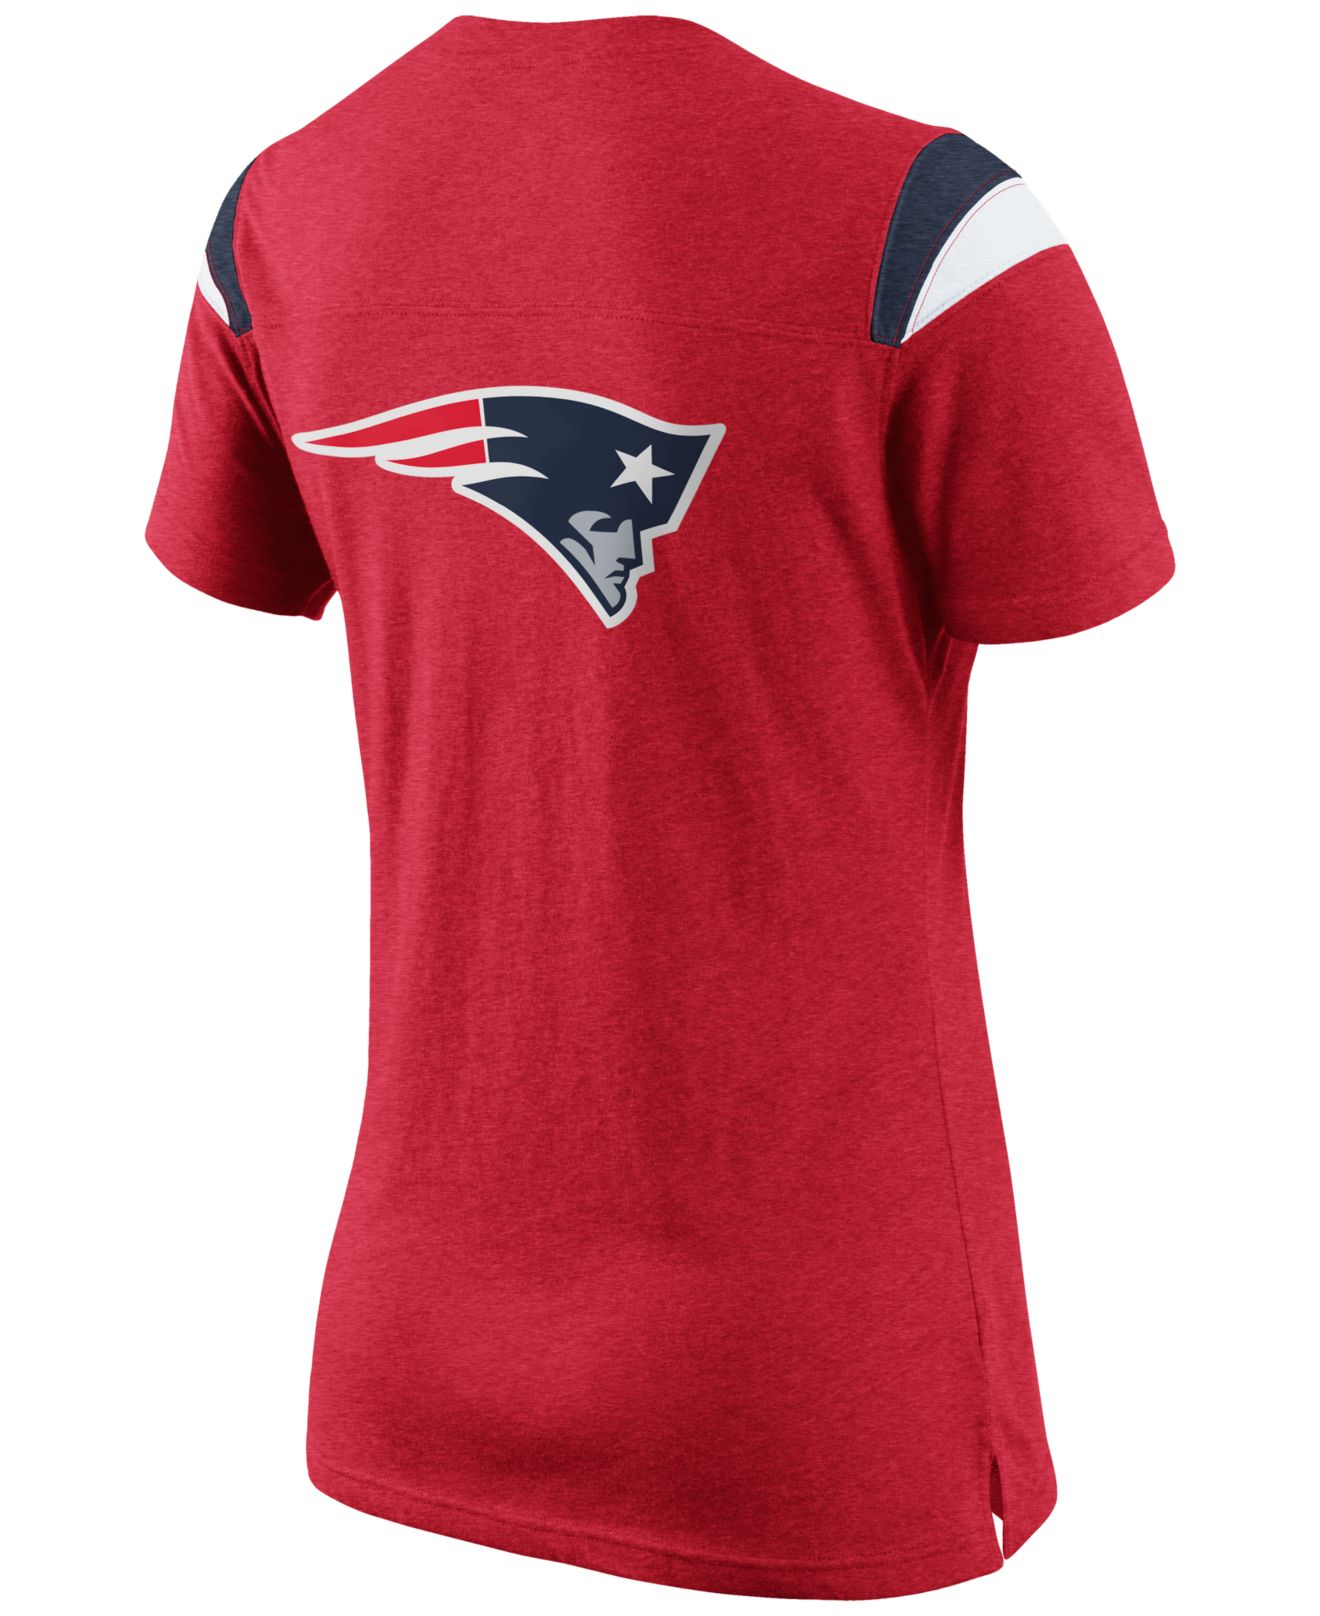 Patriots clothing for women